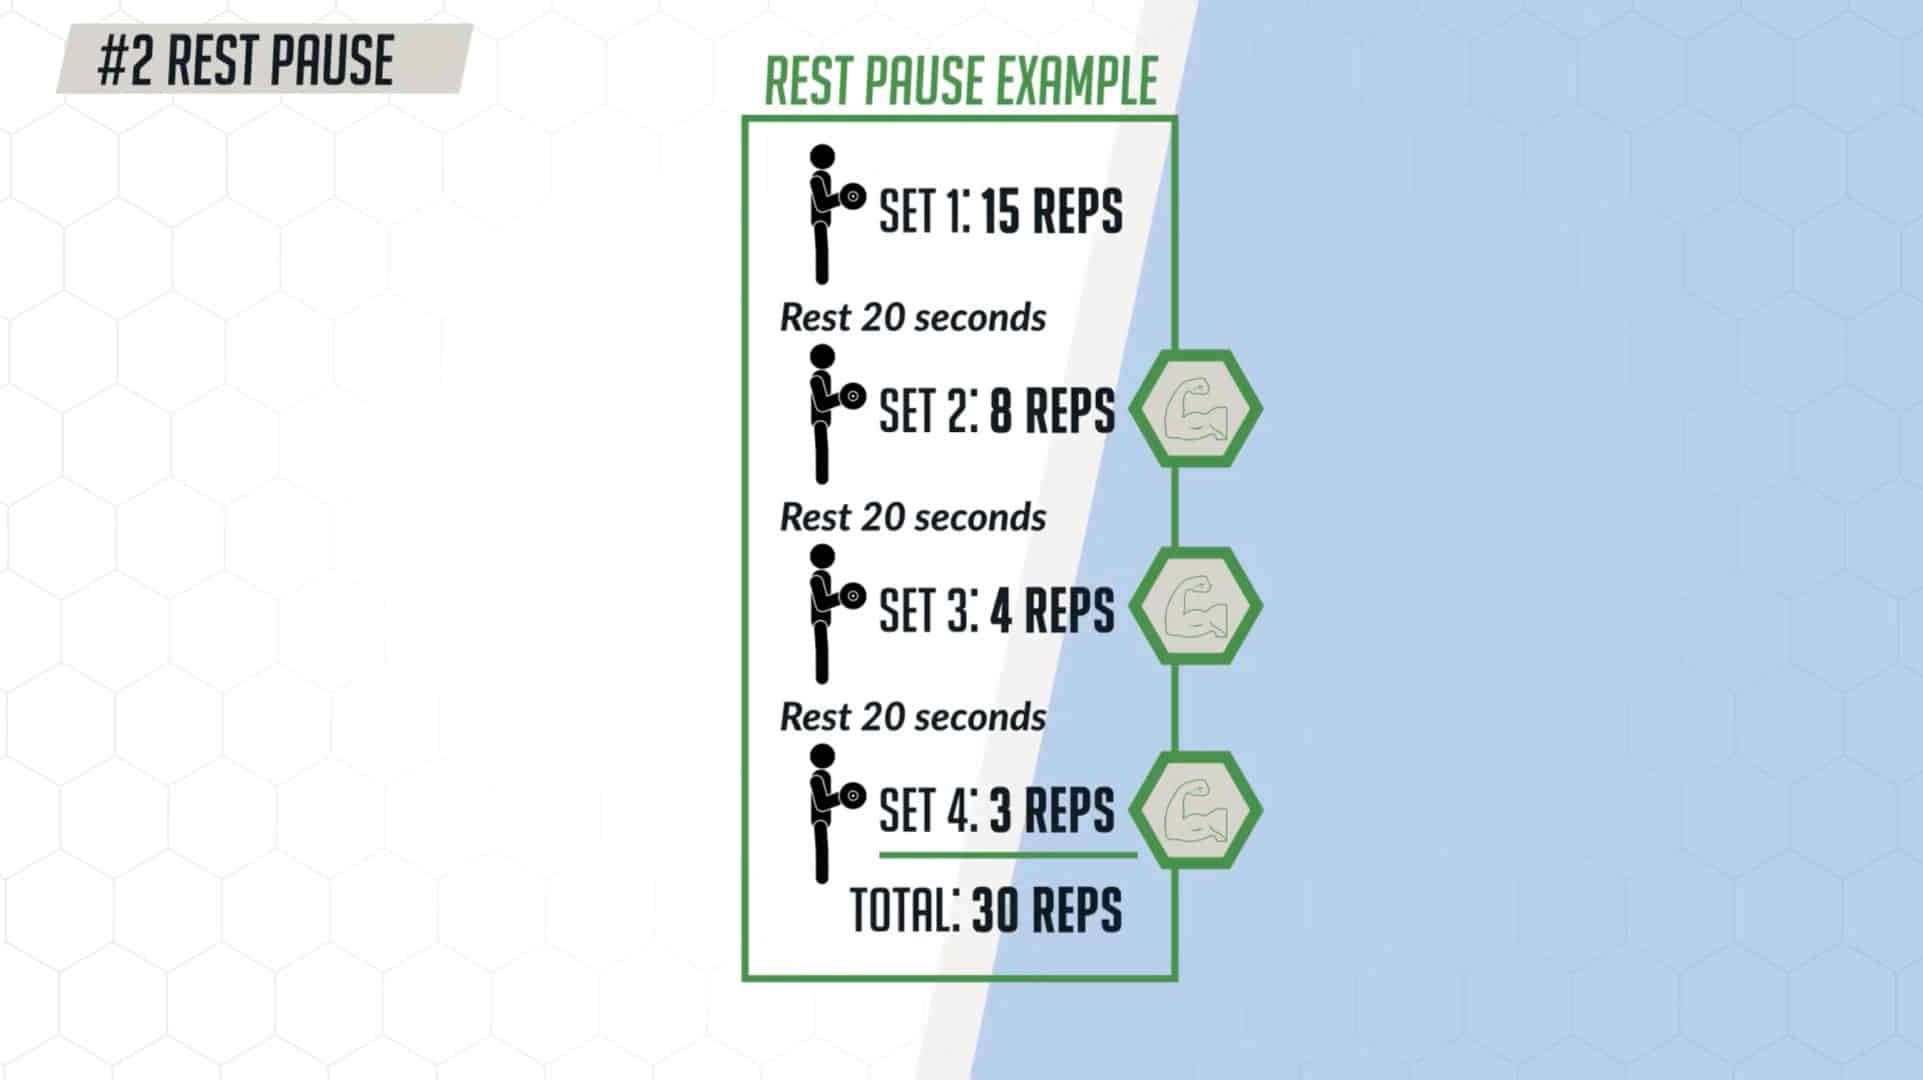 How-incorporating-the-rest-pause-training-method-can-help-you-get-in-a-fast-and-effective-workout